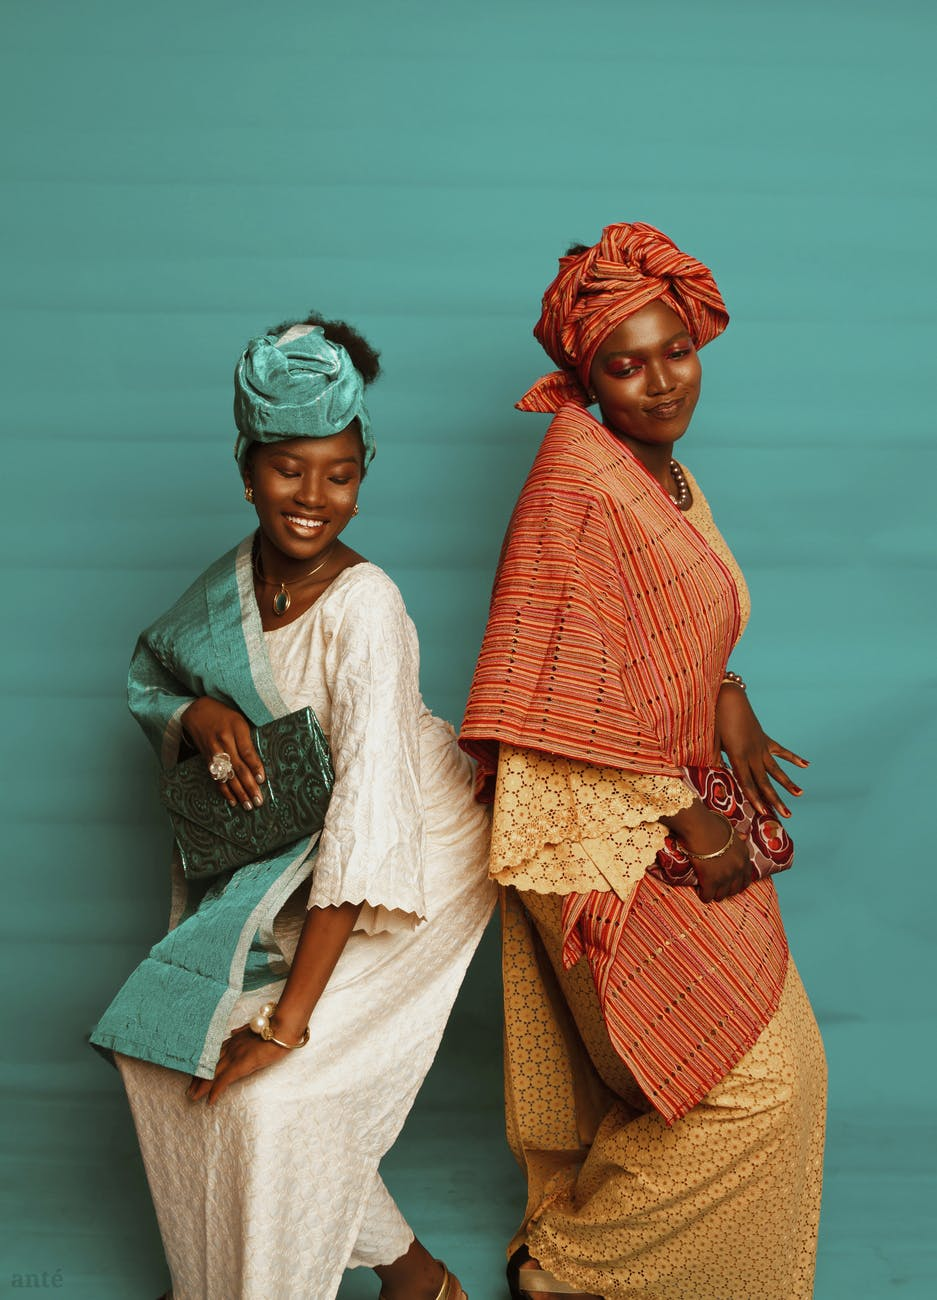 black women in traditional dresses and headdress near blue wall